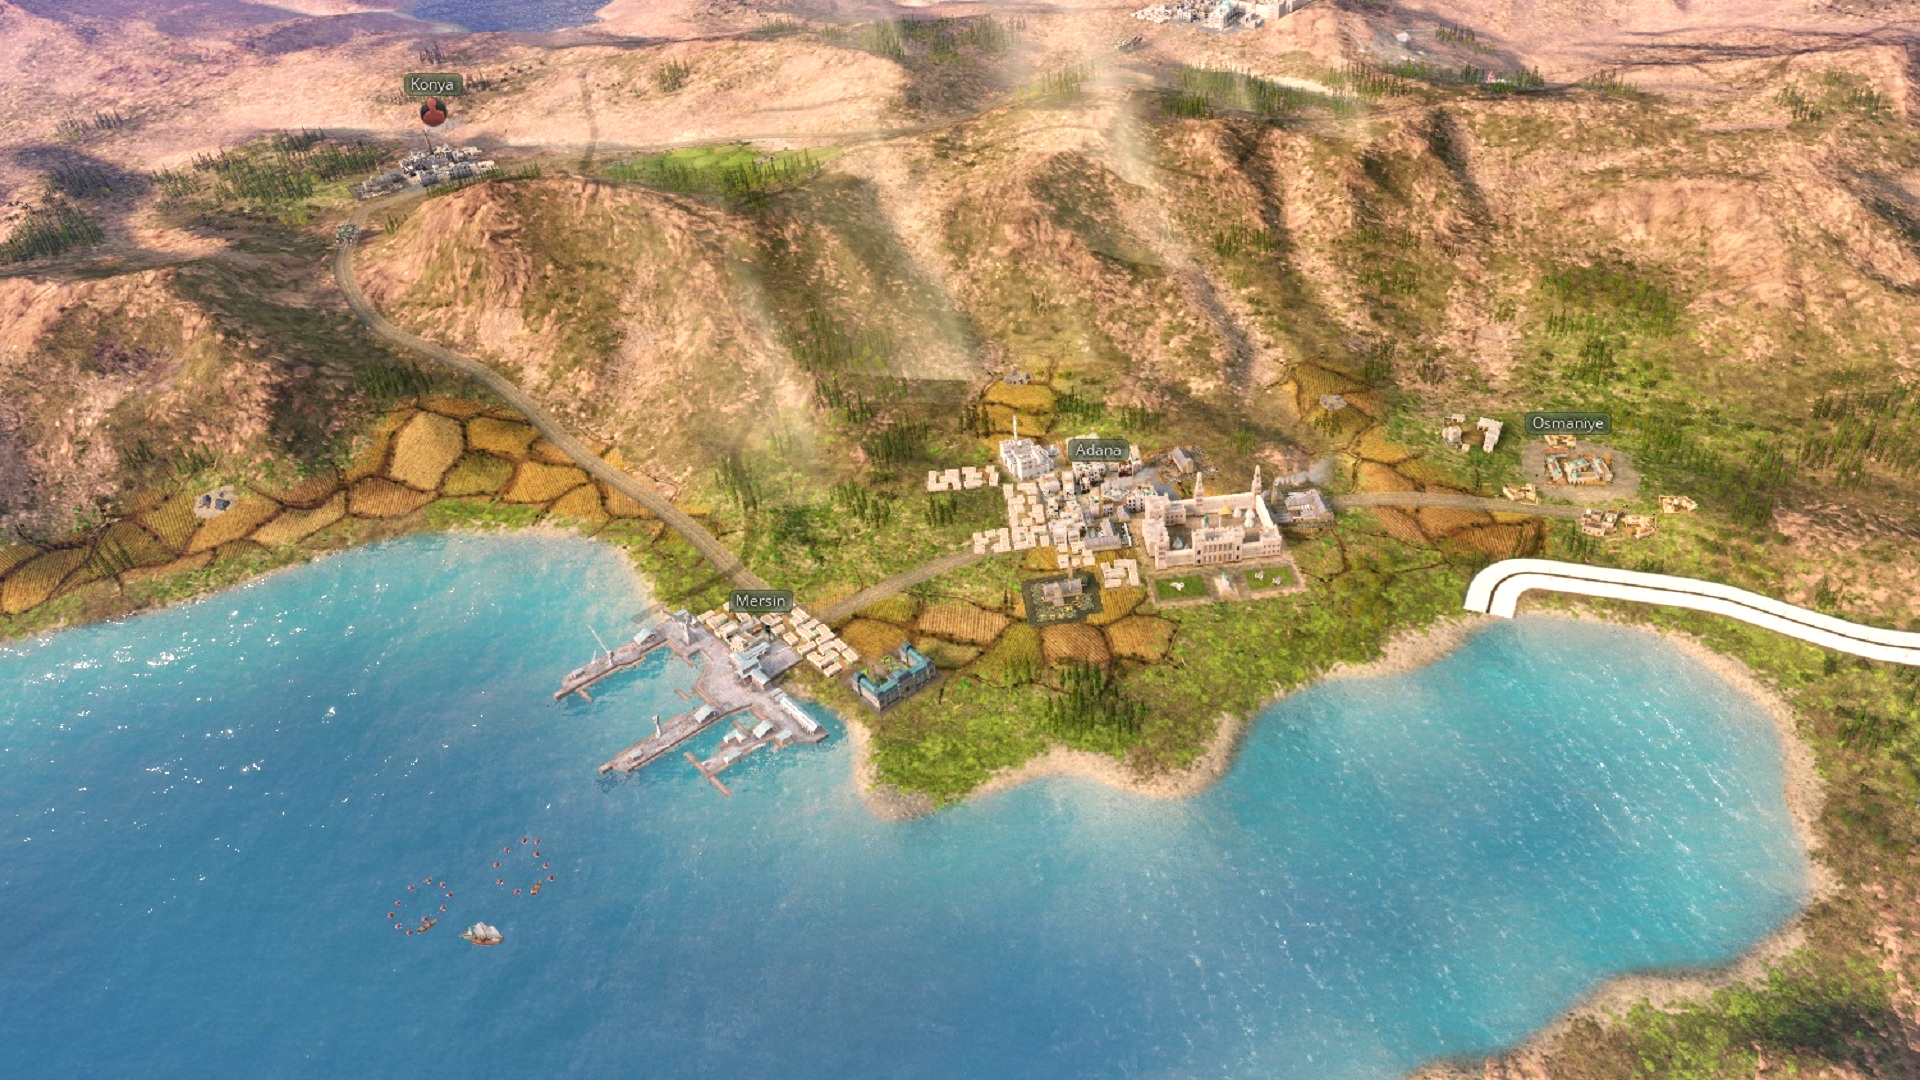 Victoria 3 offers an exciting, complex vision of grand strategy game economics